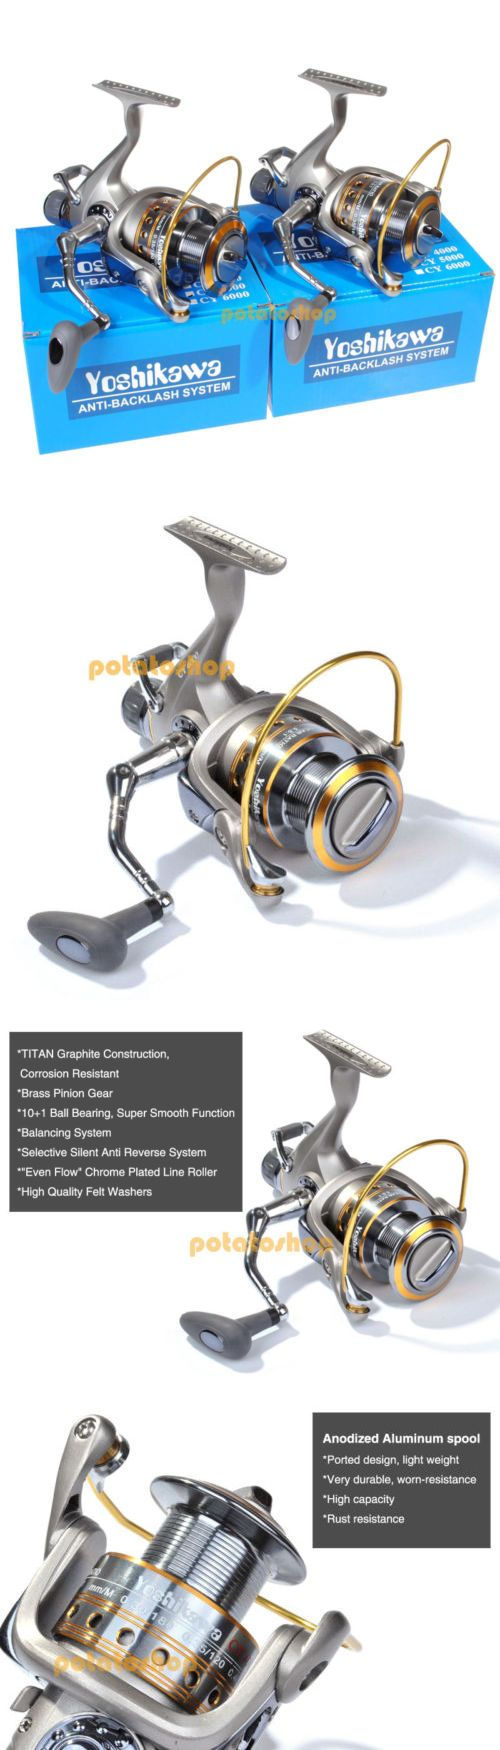 Spinning Reels 36147: Lot 2 11Bb Yoshikawa Bait-Feeder Spinning Reel Carp Salmon Fishing 4000 5.5:1 -> BUY IT NOW ONLY: $60.99 on eBay!